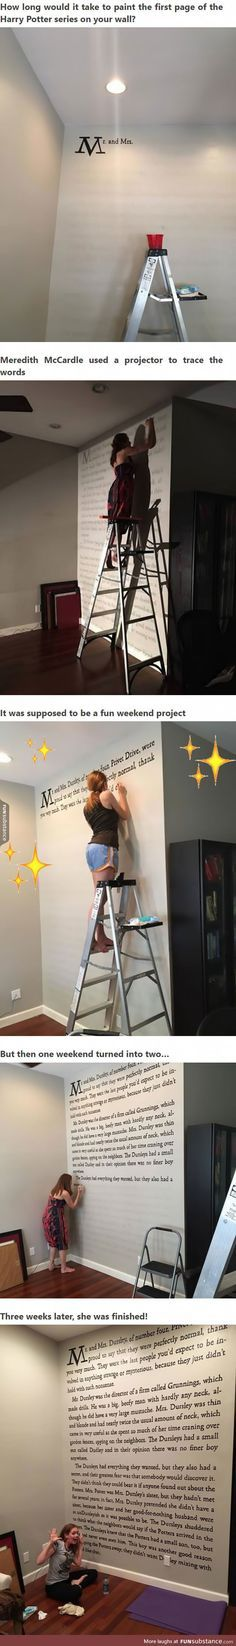 "A Harry Potter Fan Paints First Page Of ""Sorcerer's Stone"" Onto Her Wall"